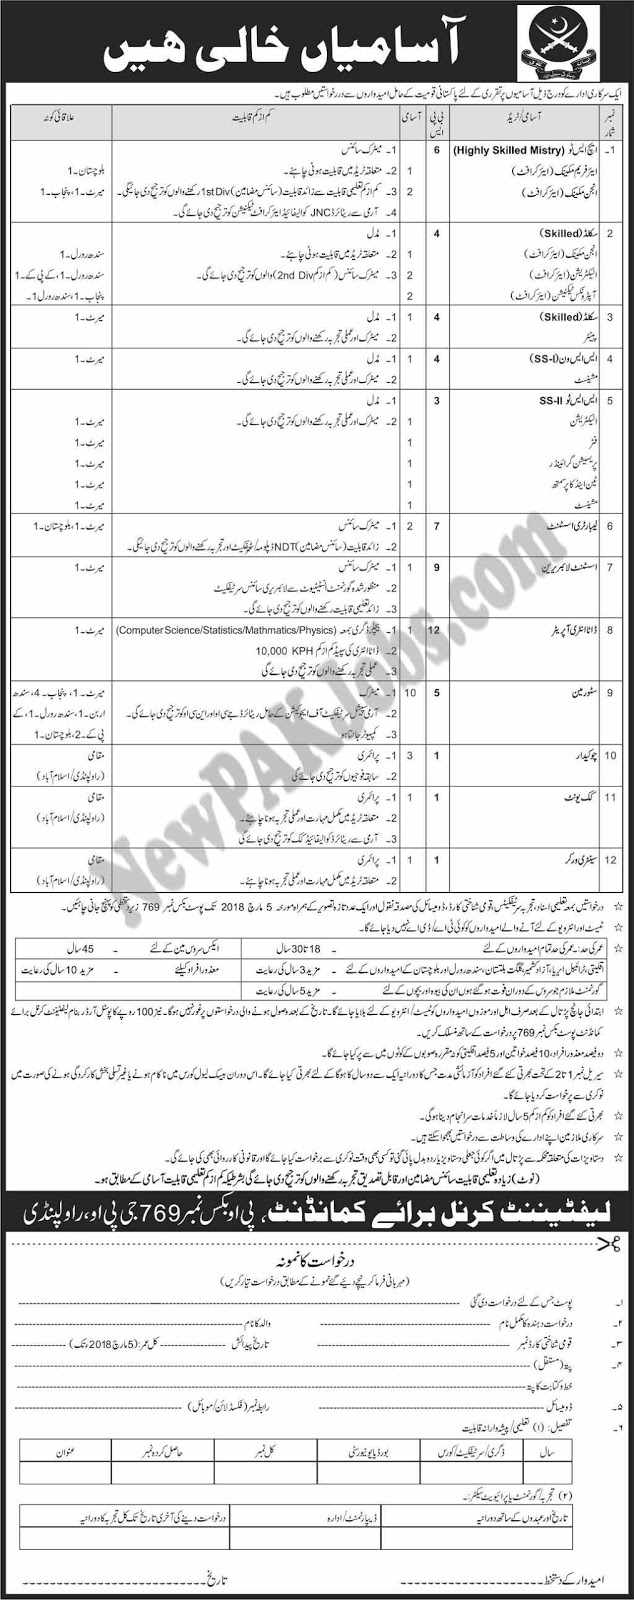 Today Latest Jobs in Pakistan Army in Rawalpindi February 2018